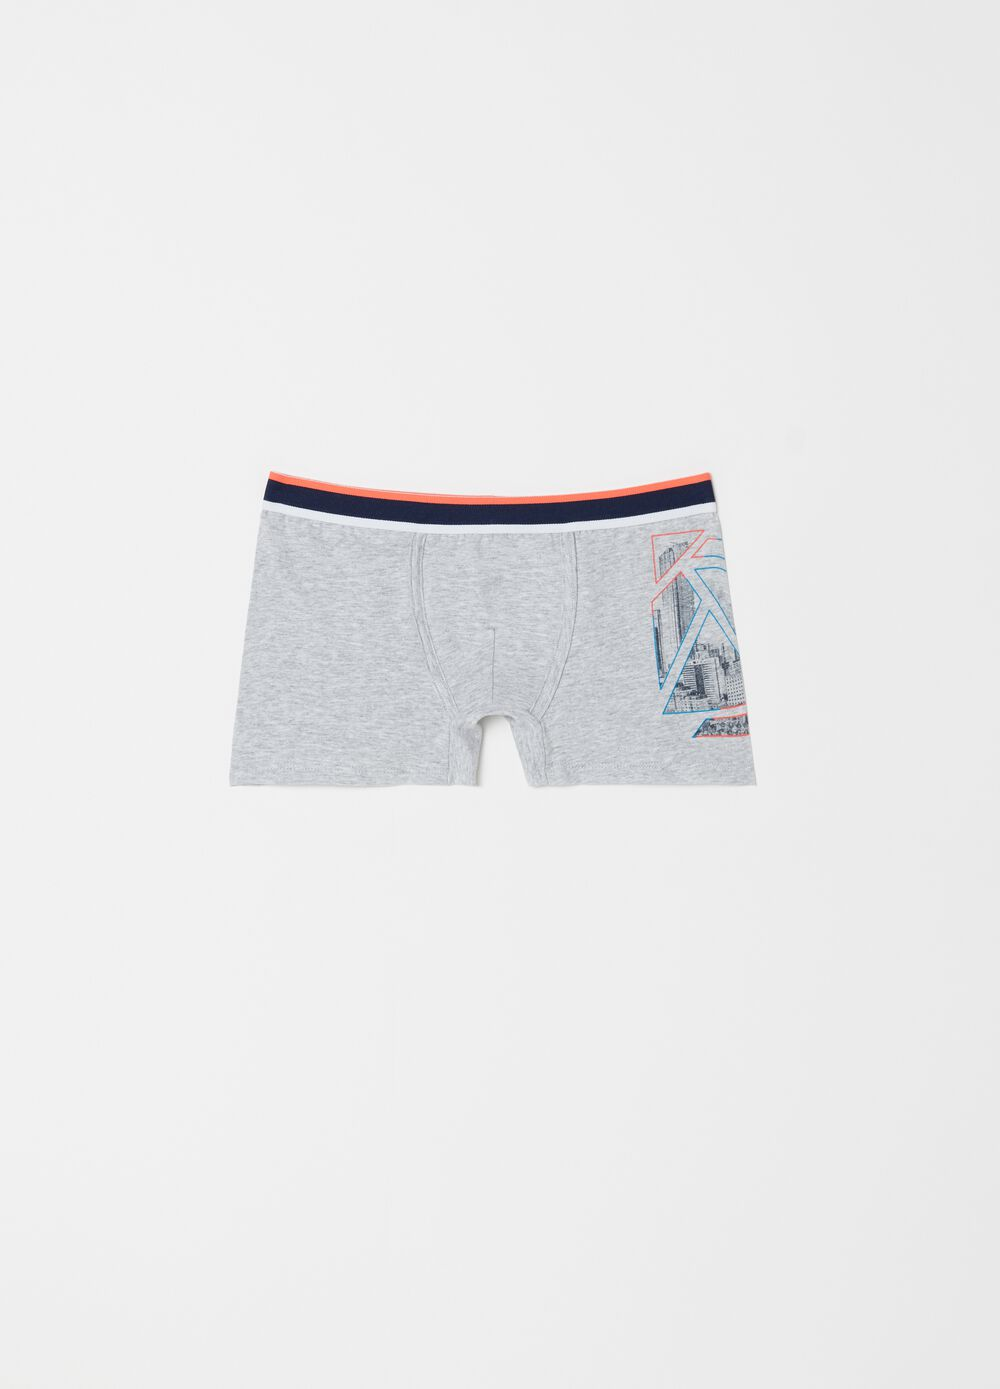 Stretch cotton printed boxers